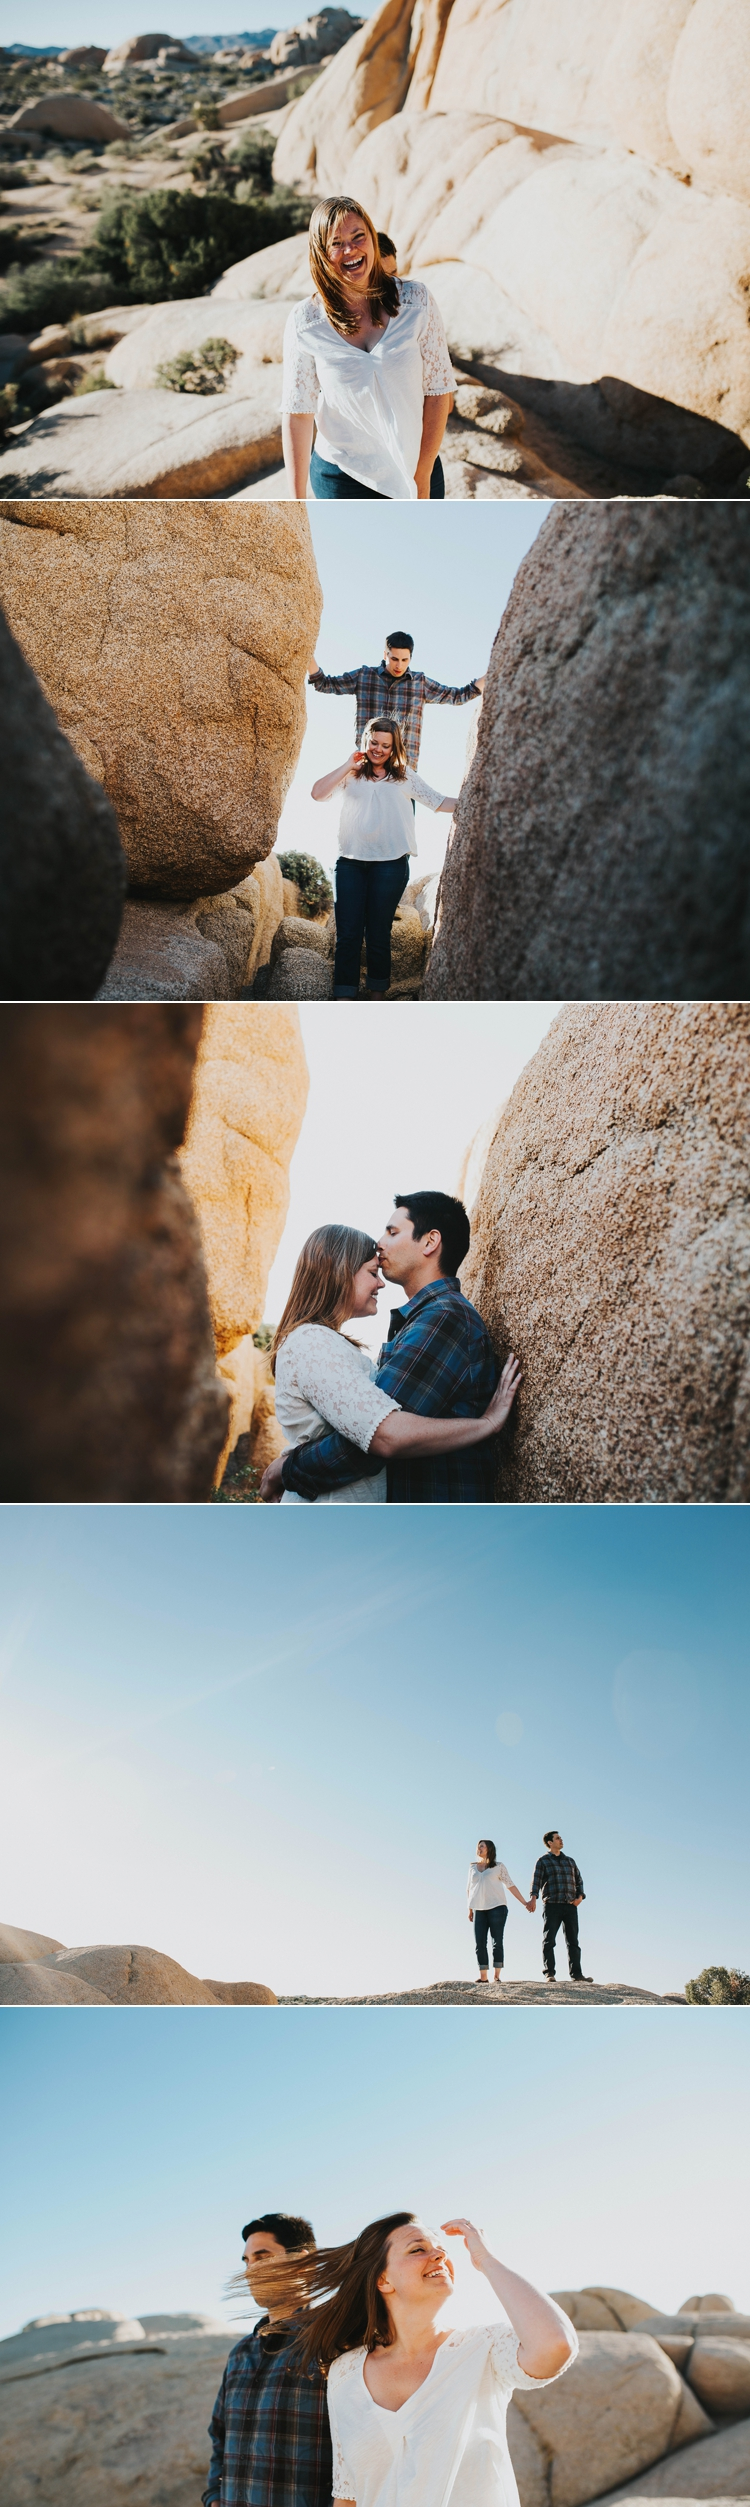 Engagement Photos Joshua Tree